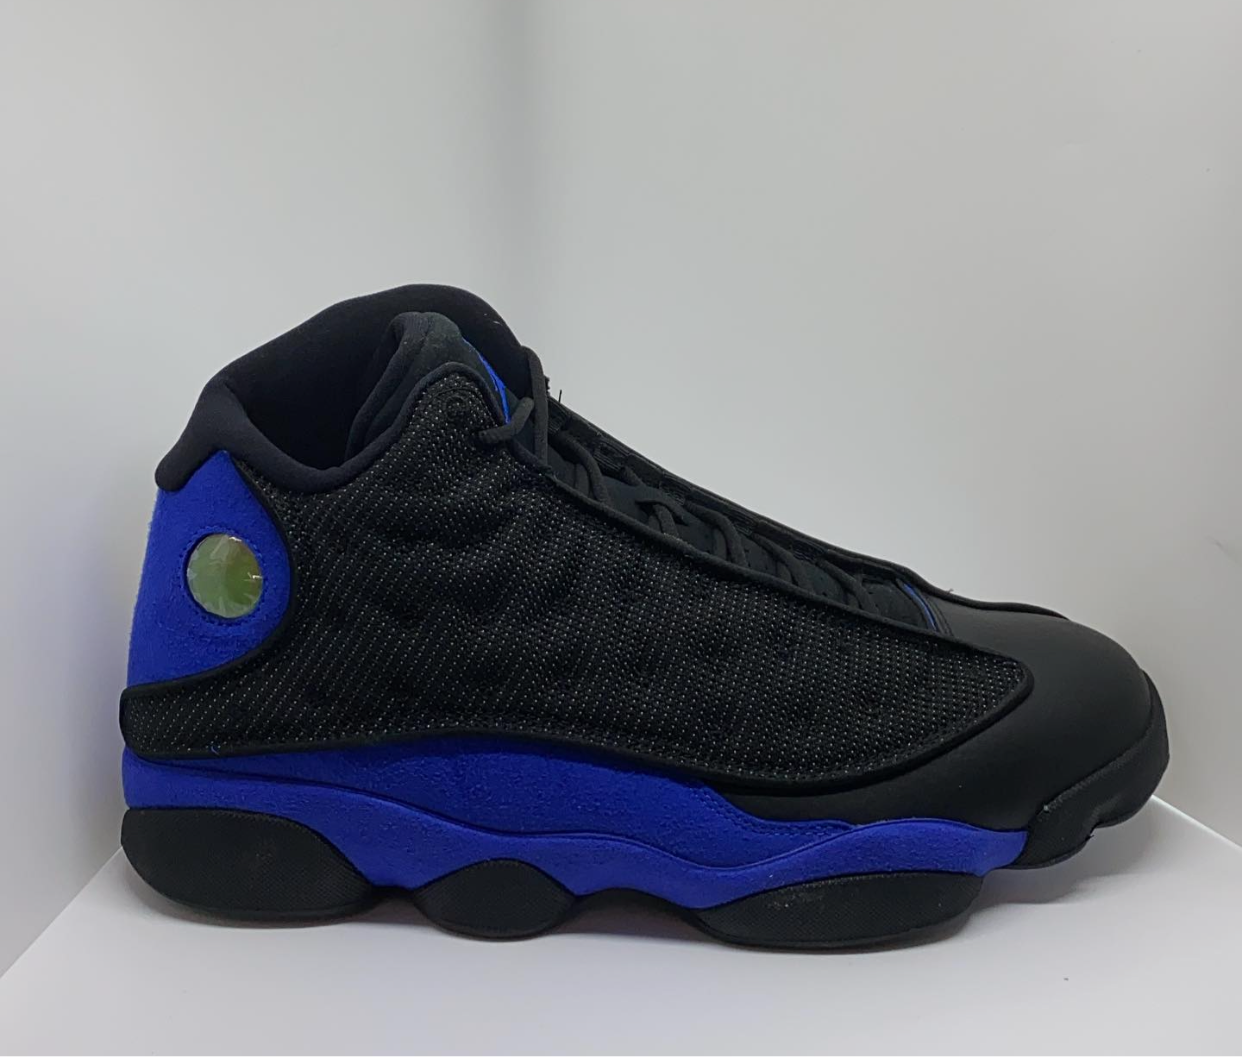 Air Jordan Retro 13s - Exclusive Shoes